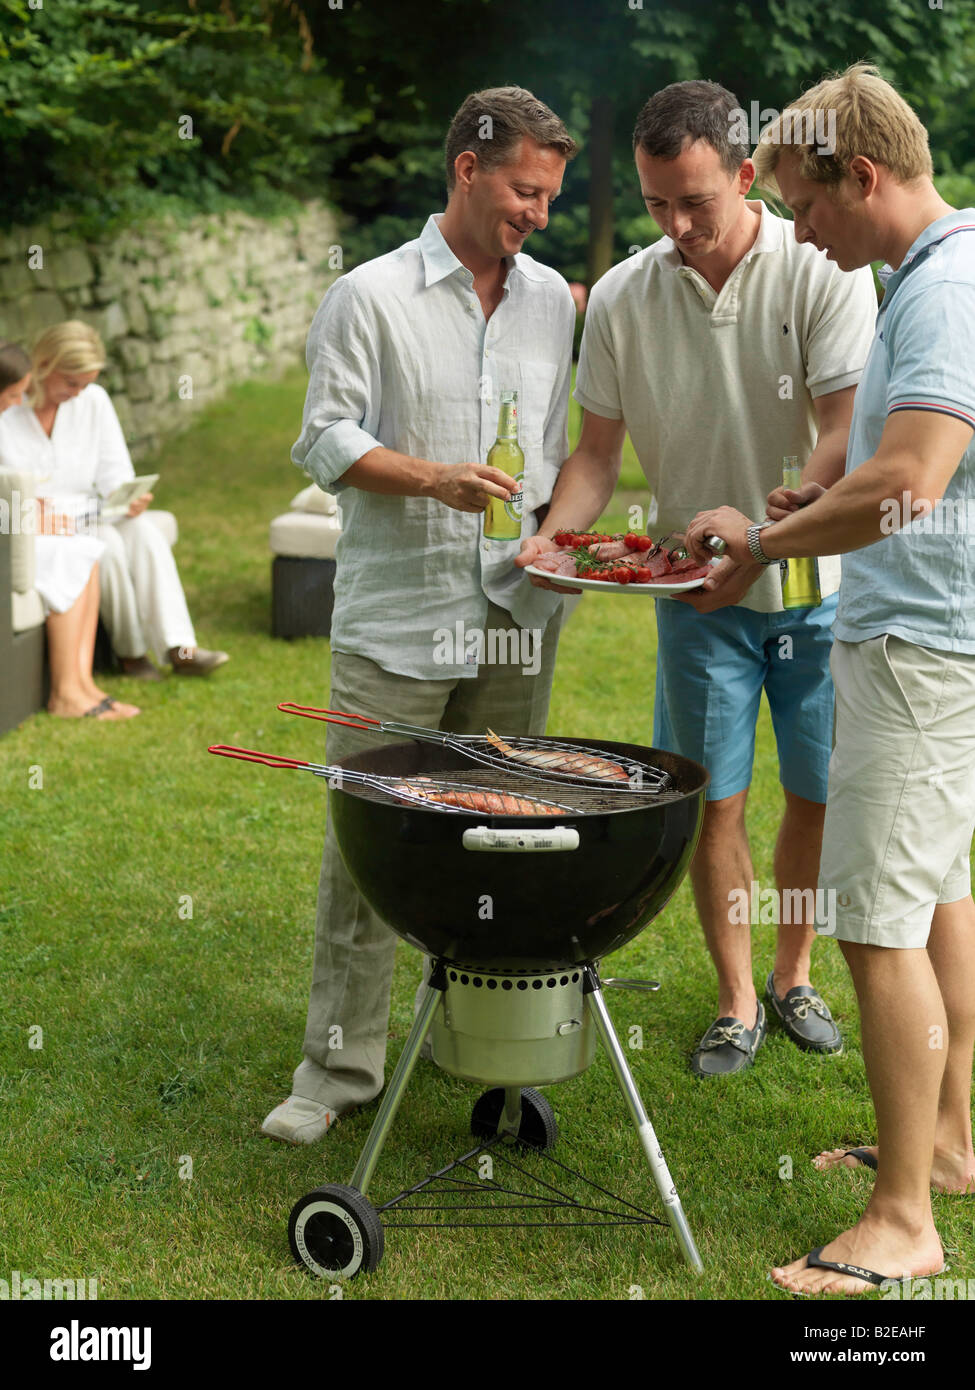 Three men preparing fish on barbeque grill in garden - Stock Image